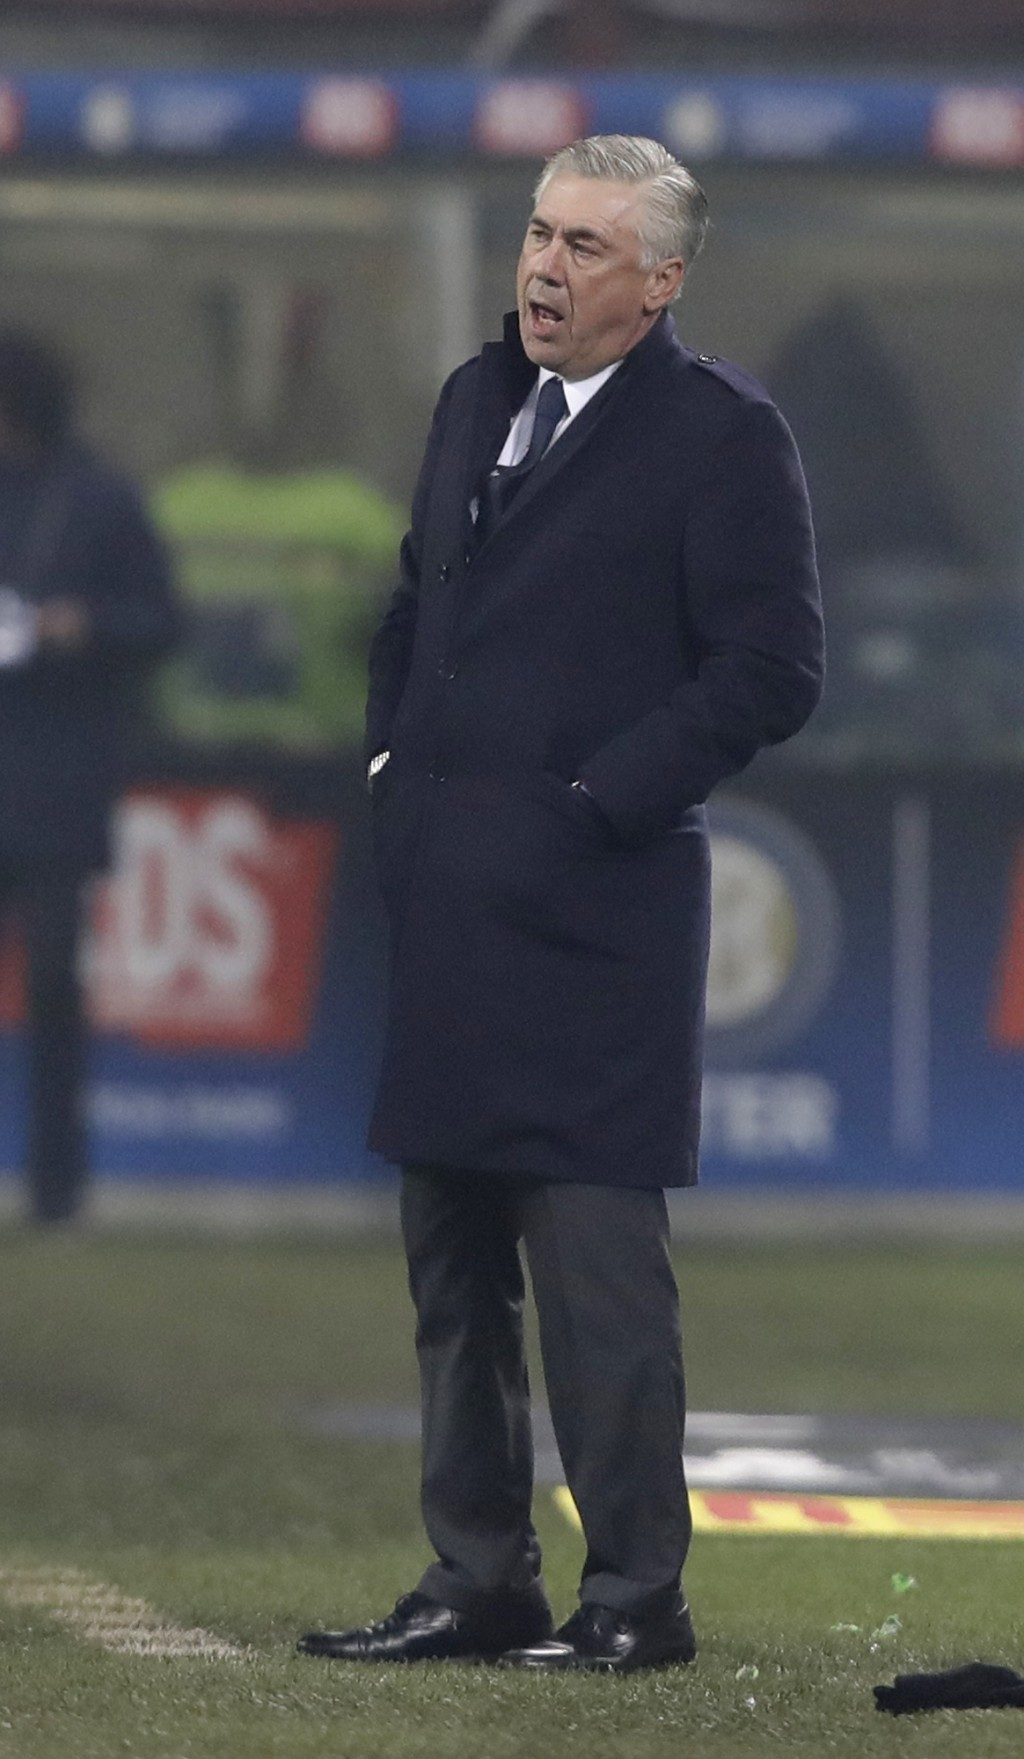 Napoli coach Carlo Ancelotti stands during a Serie A soccer match between Inter Milan and Napoli, at the San Siro stadium in Milan, Italy, Wednesday, ...